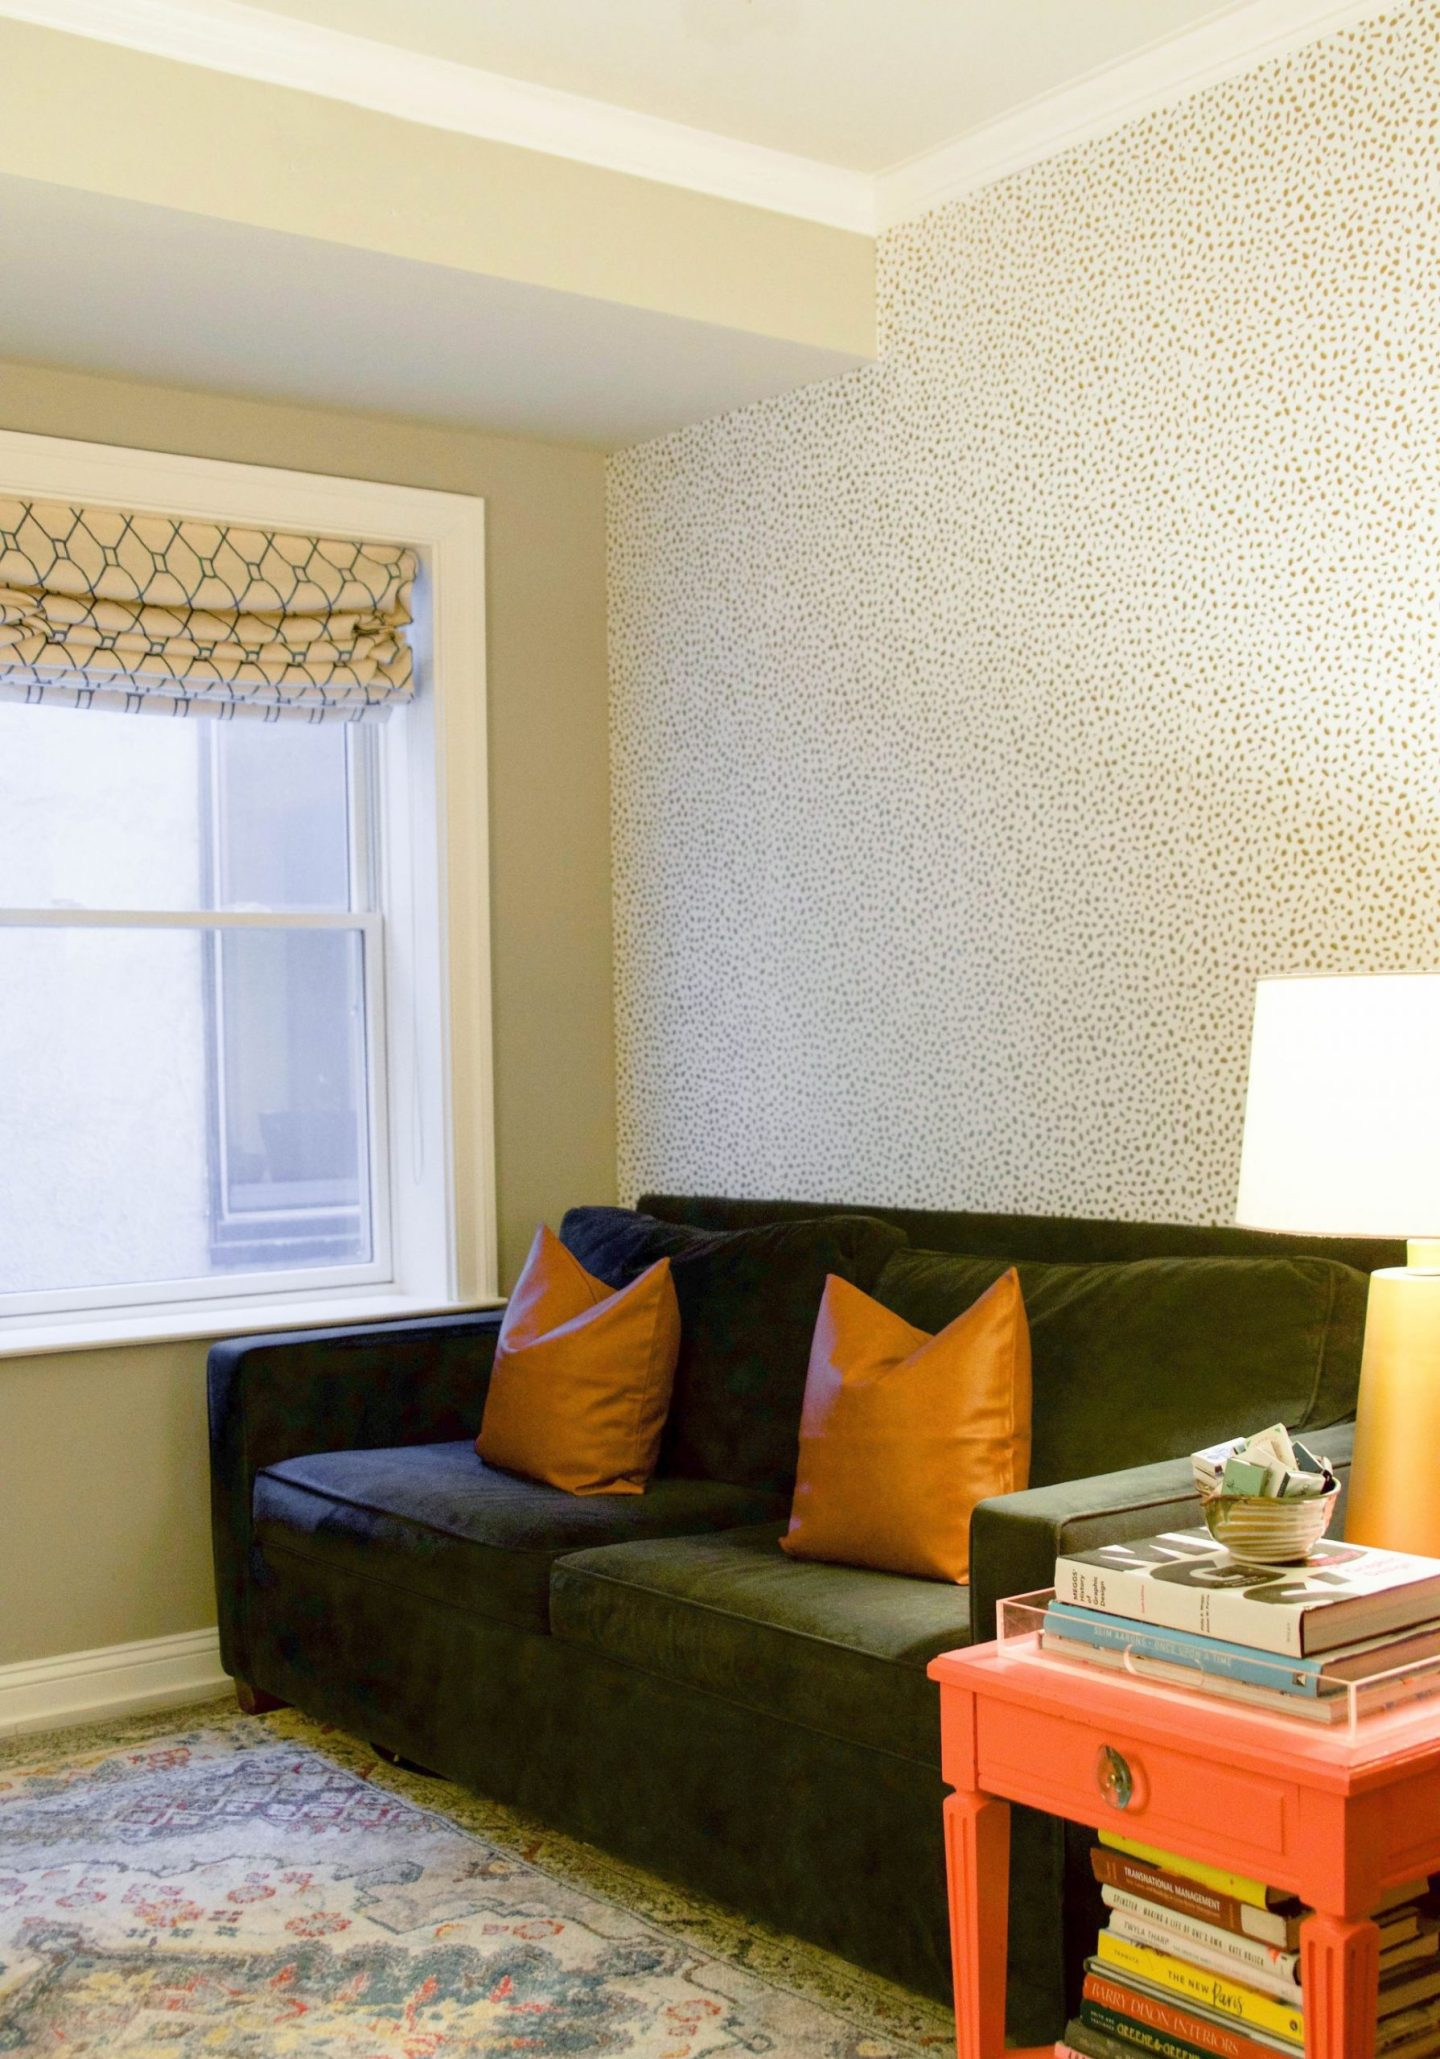 target removable wallpaper - target gold speckled wallpaper - is removable wallpaper easy to install - devine color speckled wallpaper